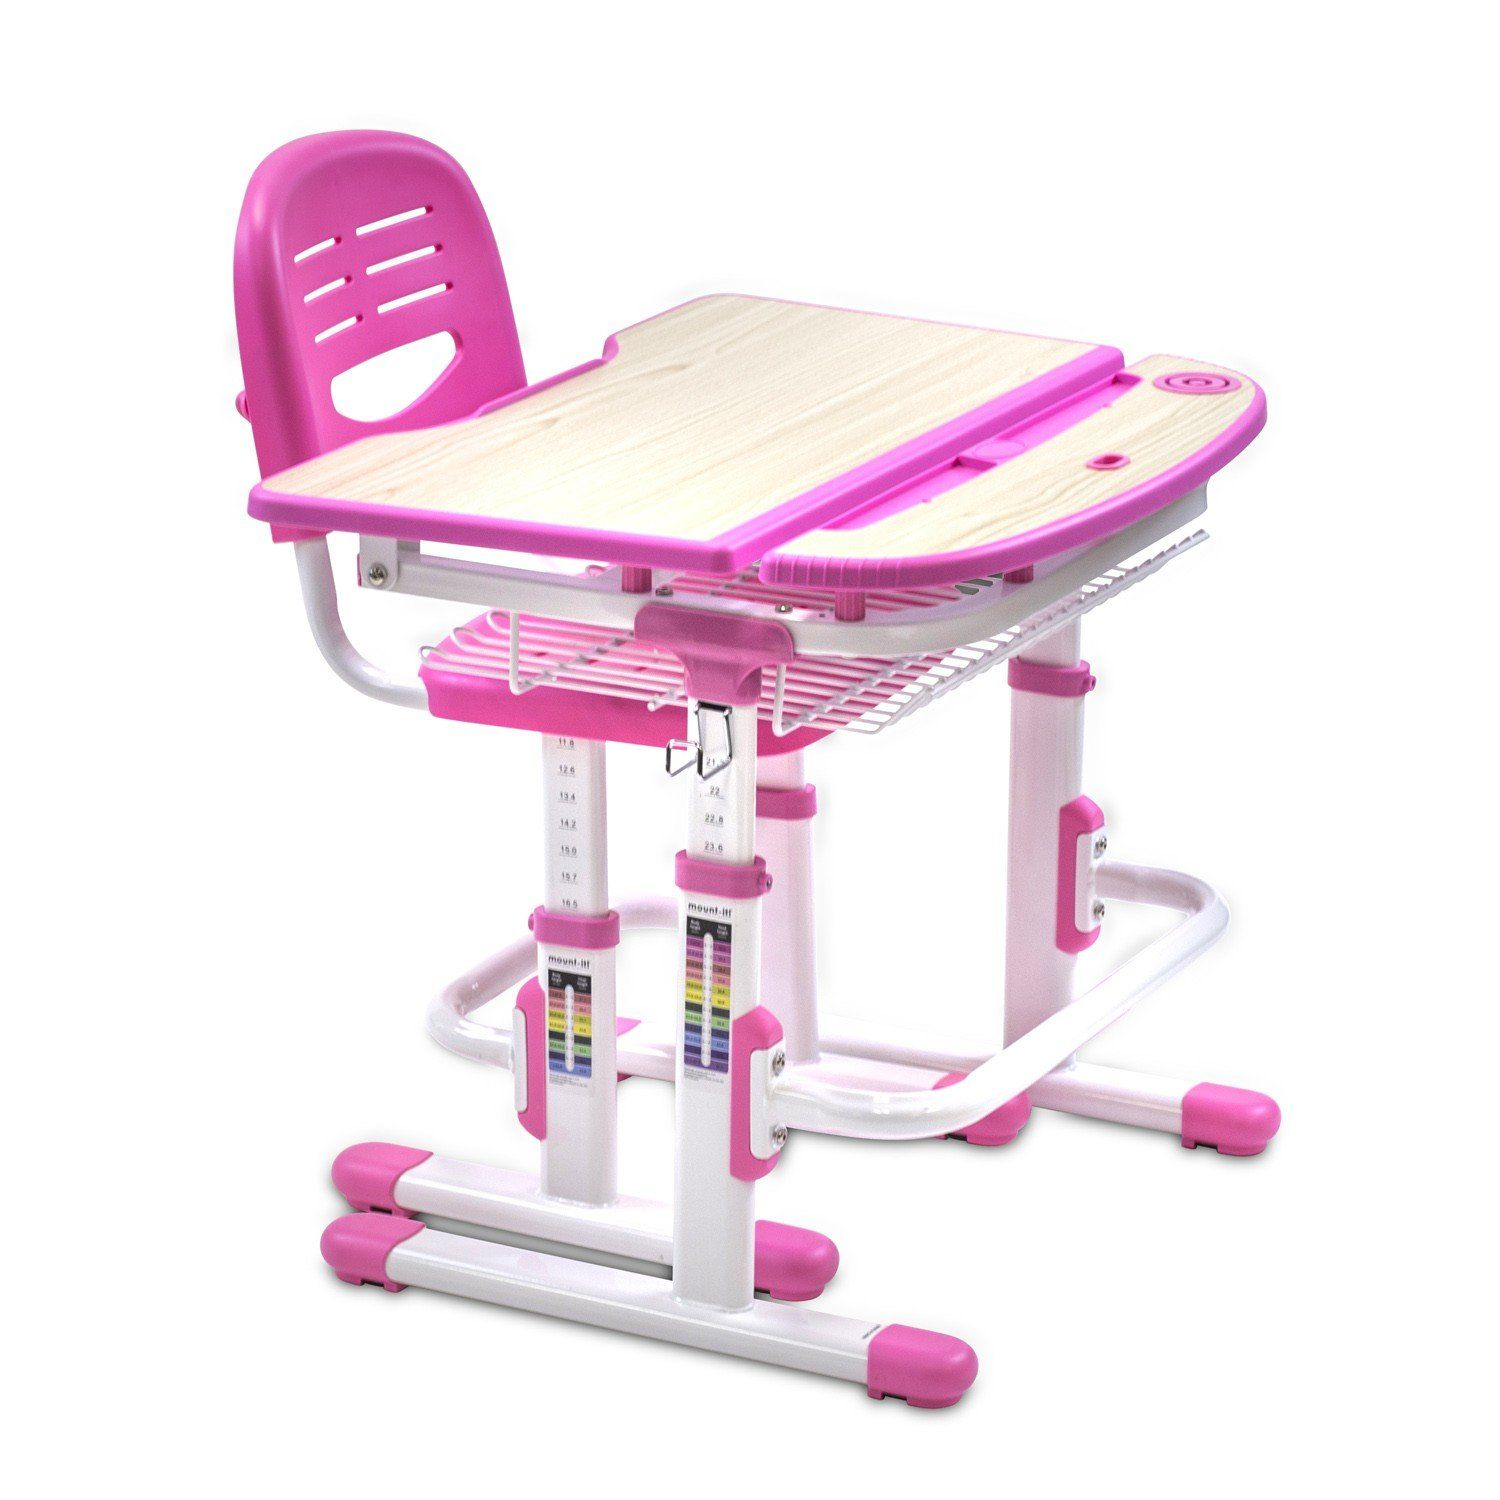 Height adjustable 28 w art desk and chair set desk and